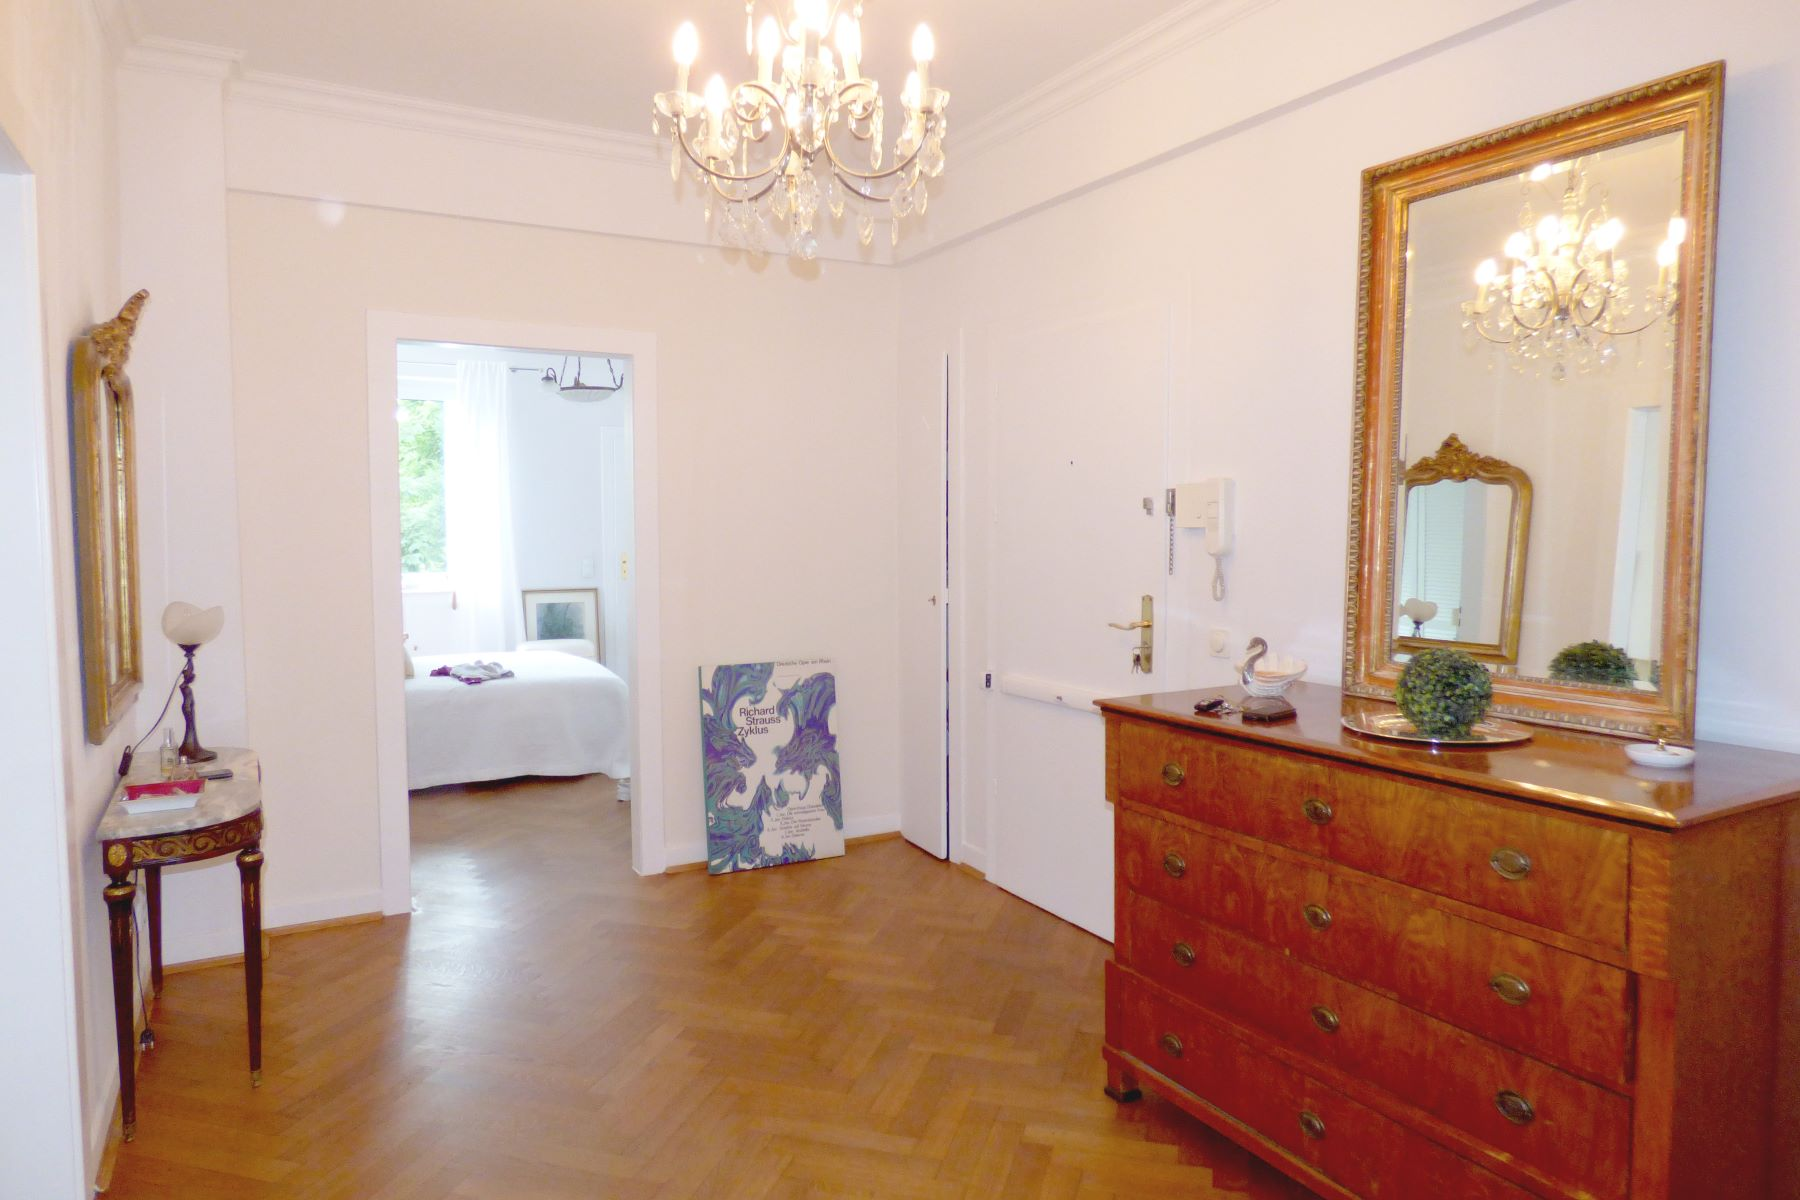 Apartments for Sale at Elegant Spacious 1 Bedroom Apartment Dusseldorf, Nordrhein-Westfalen 40237 Germany